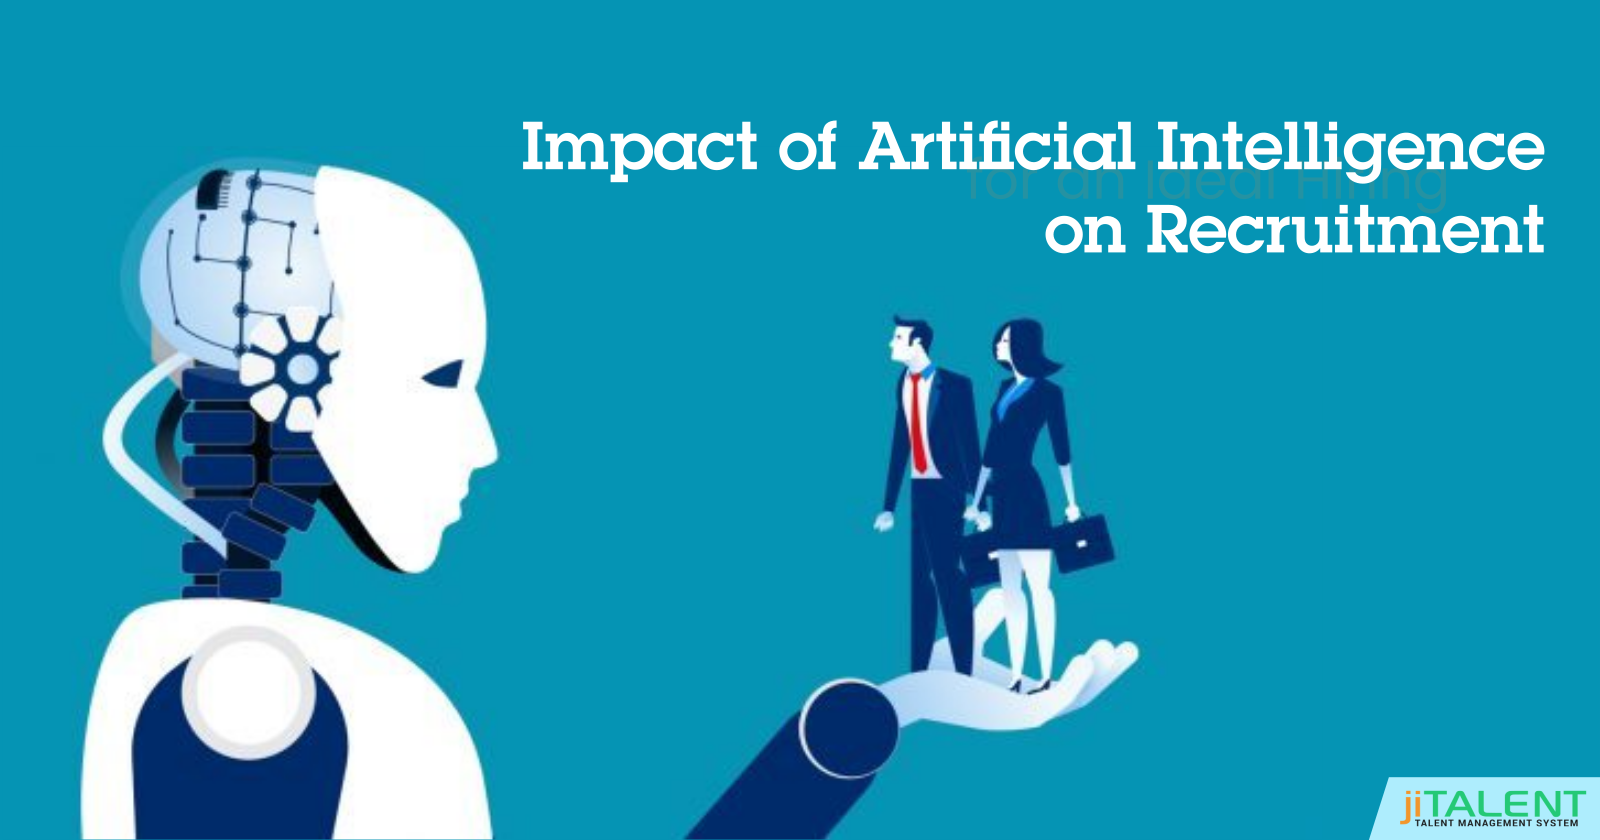 Impact of Artificial Intelligence on Recruitment in the Future